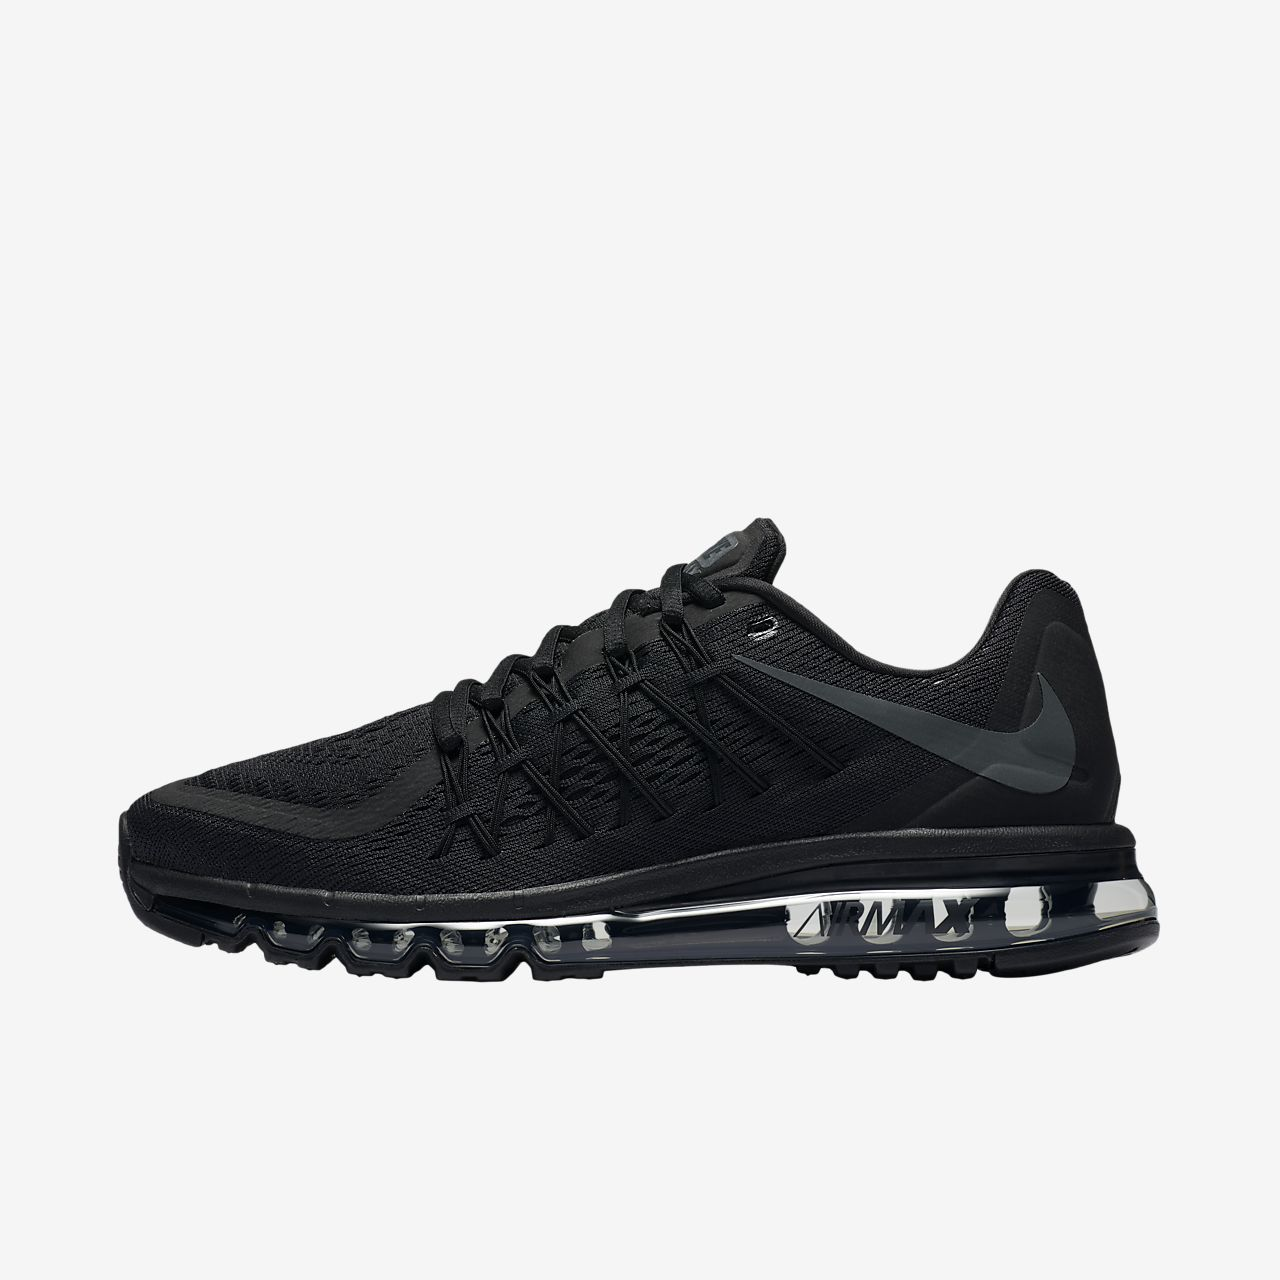 new concept d2eb2 3b54a ... Chaussure Nike Air Max 2015 pour Homme